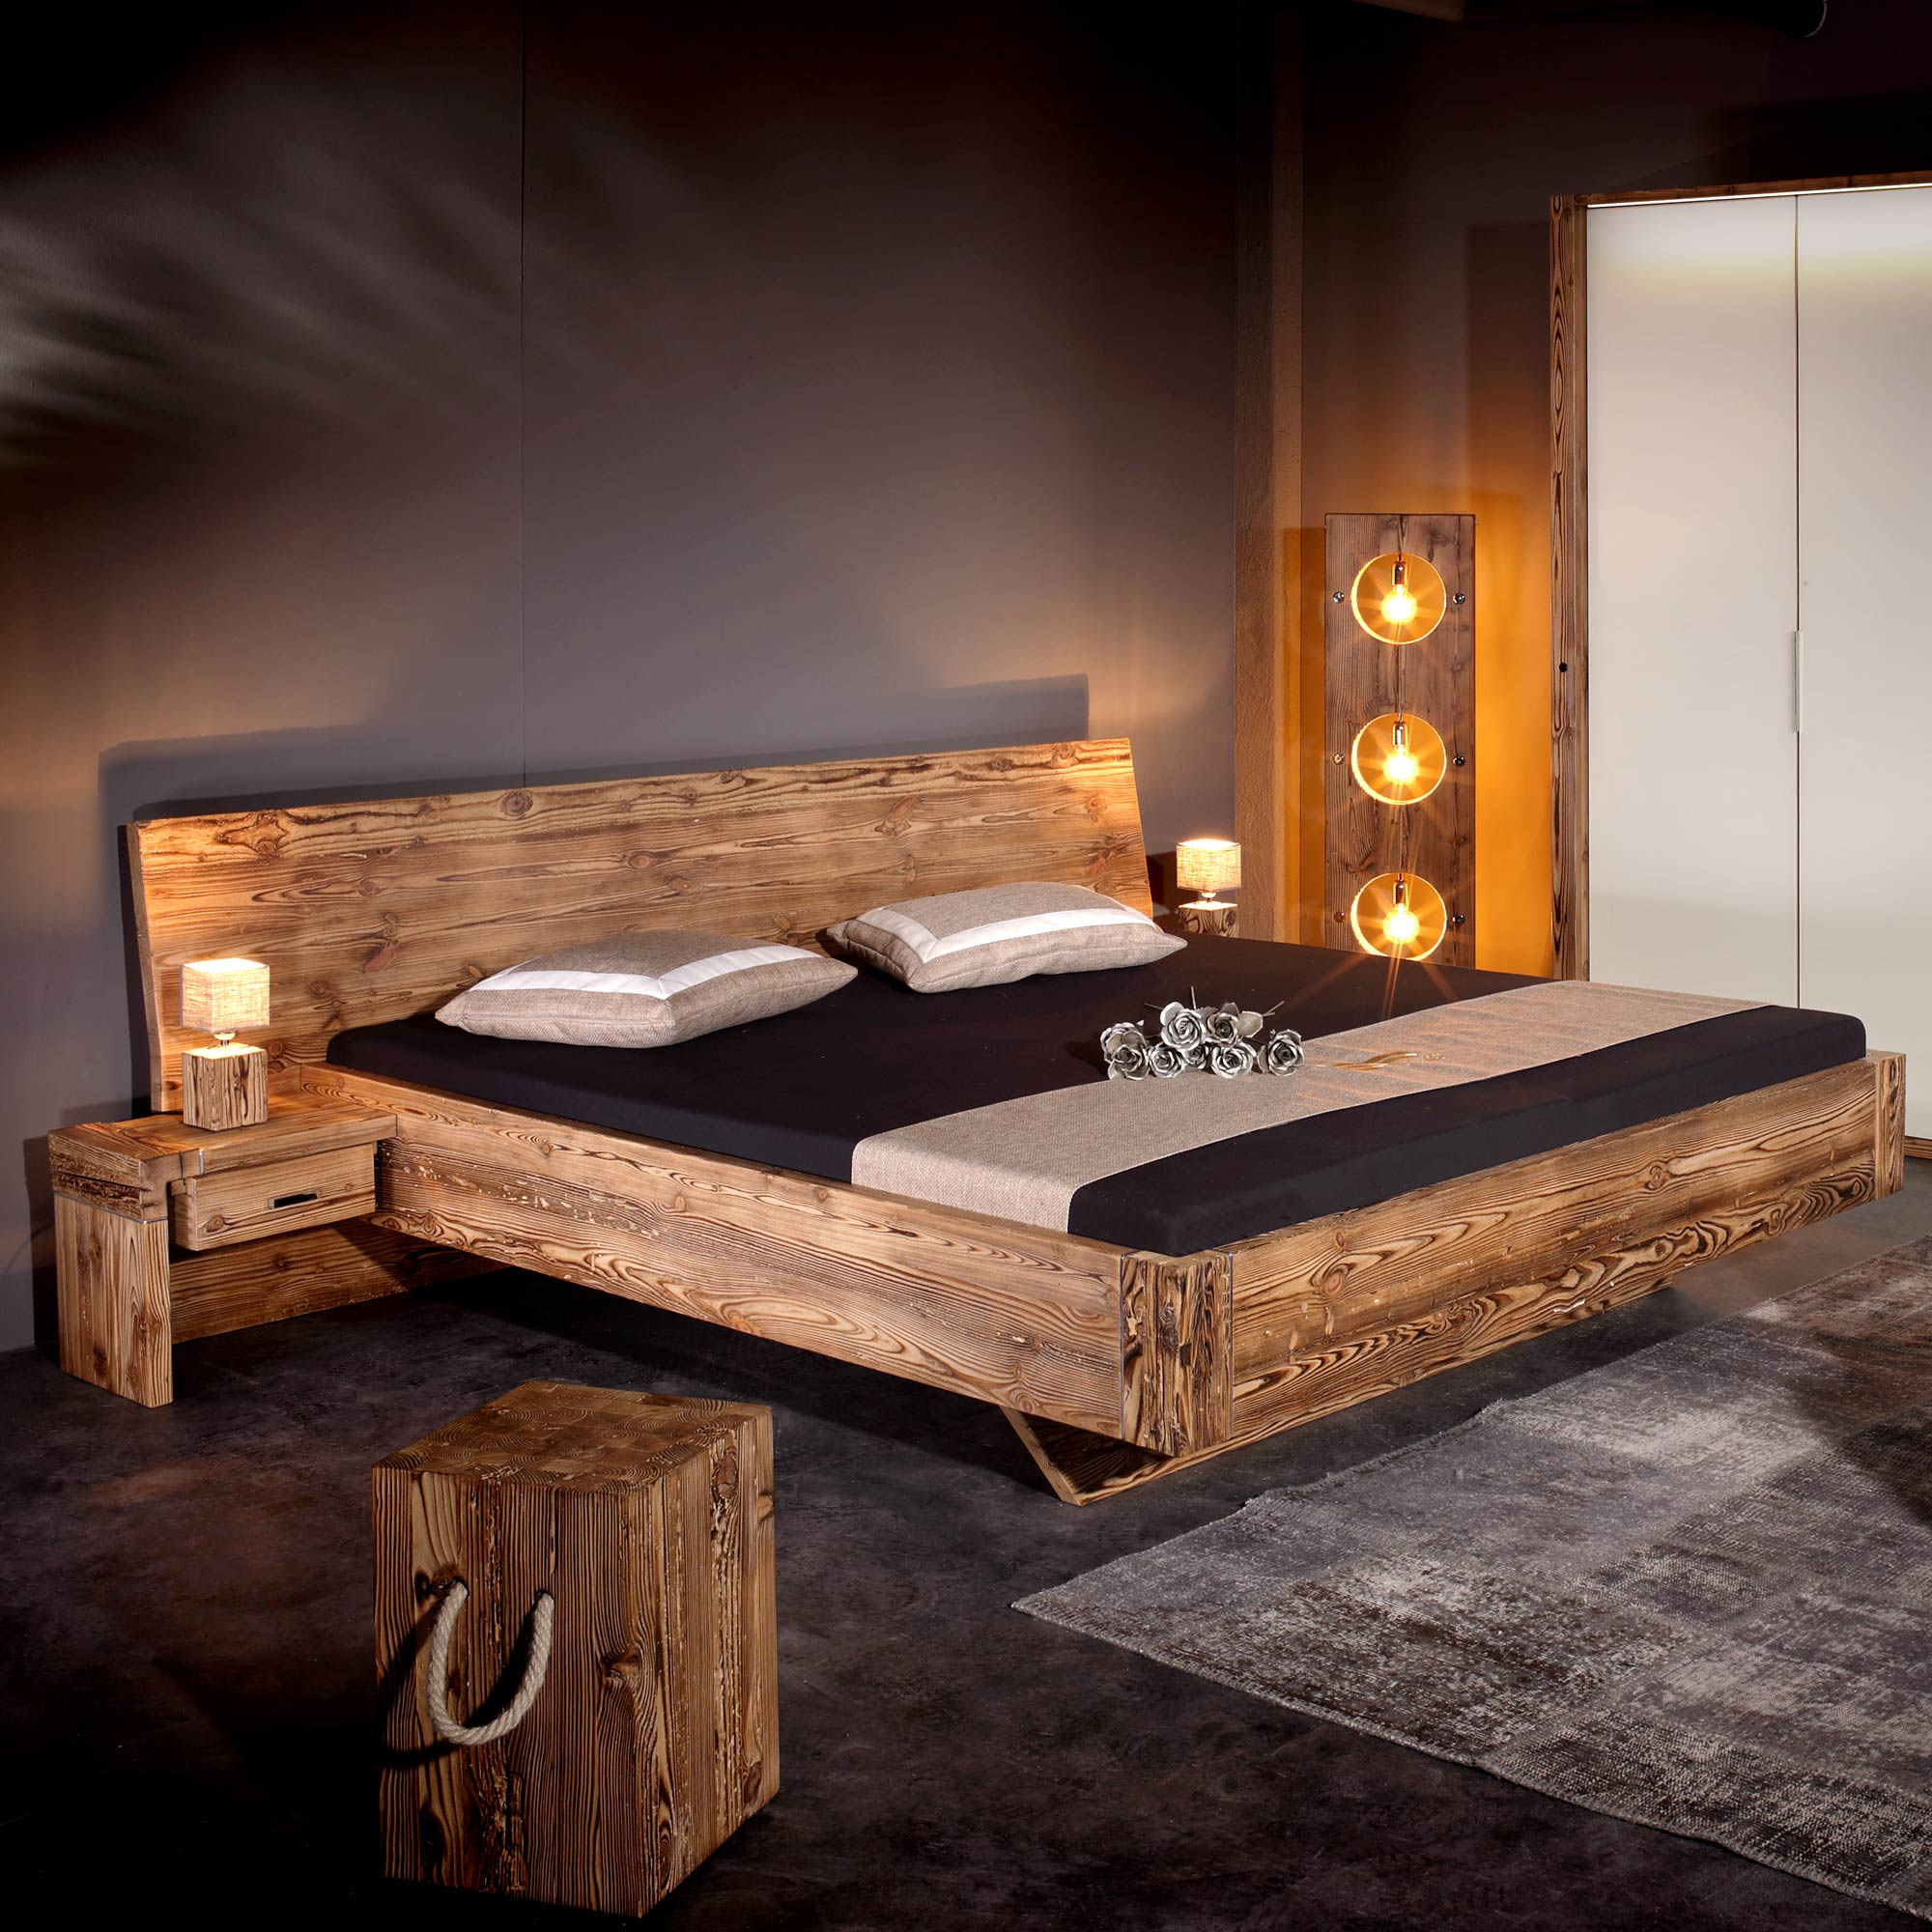 massivholzm bel vom schweizer hersteller sprenger beim m bel b r. Black Bedroom Furniture Sets. Home Design Ideas